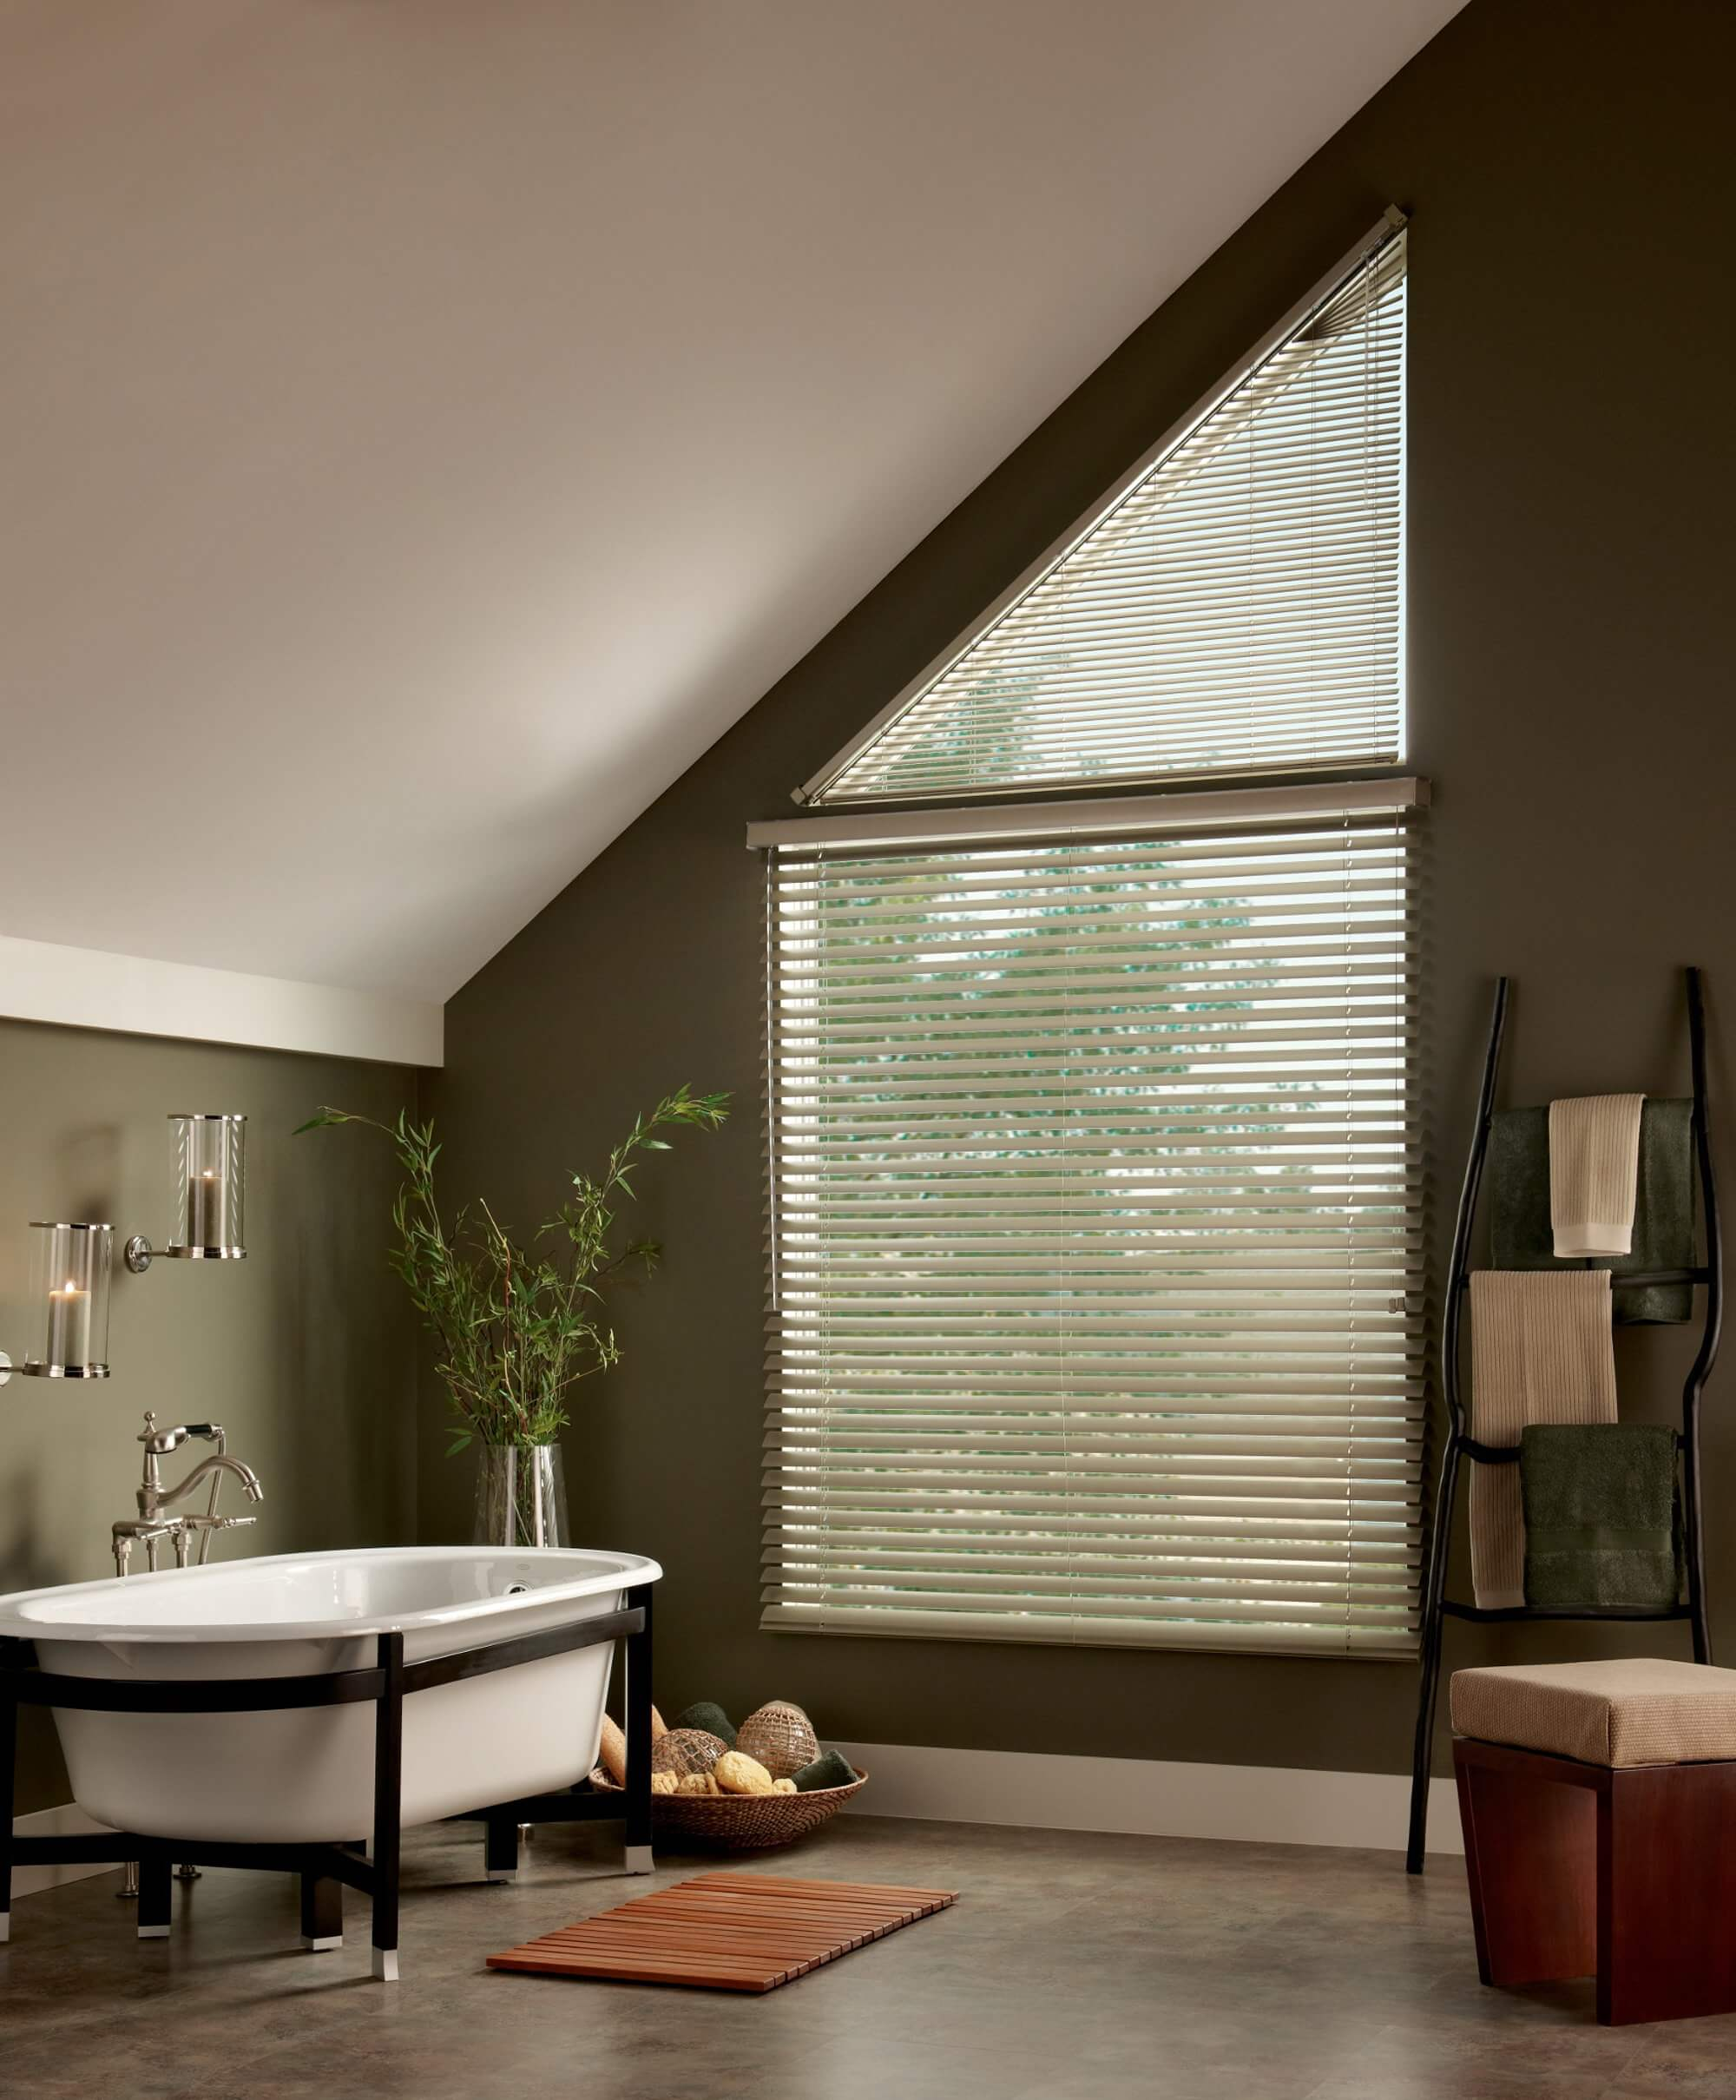 Window treatments for angled windows are perfect for adding privacy and light control.